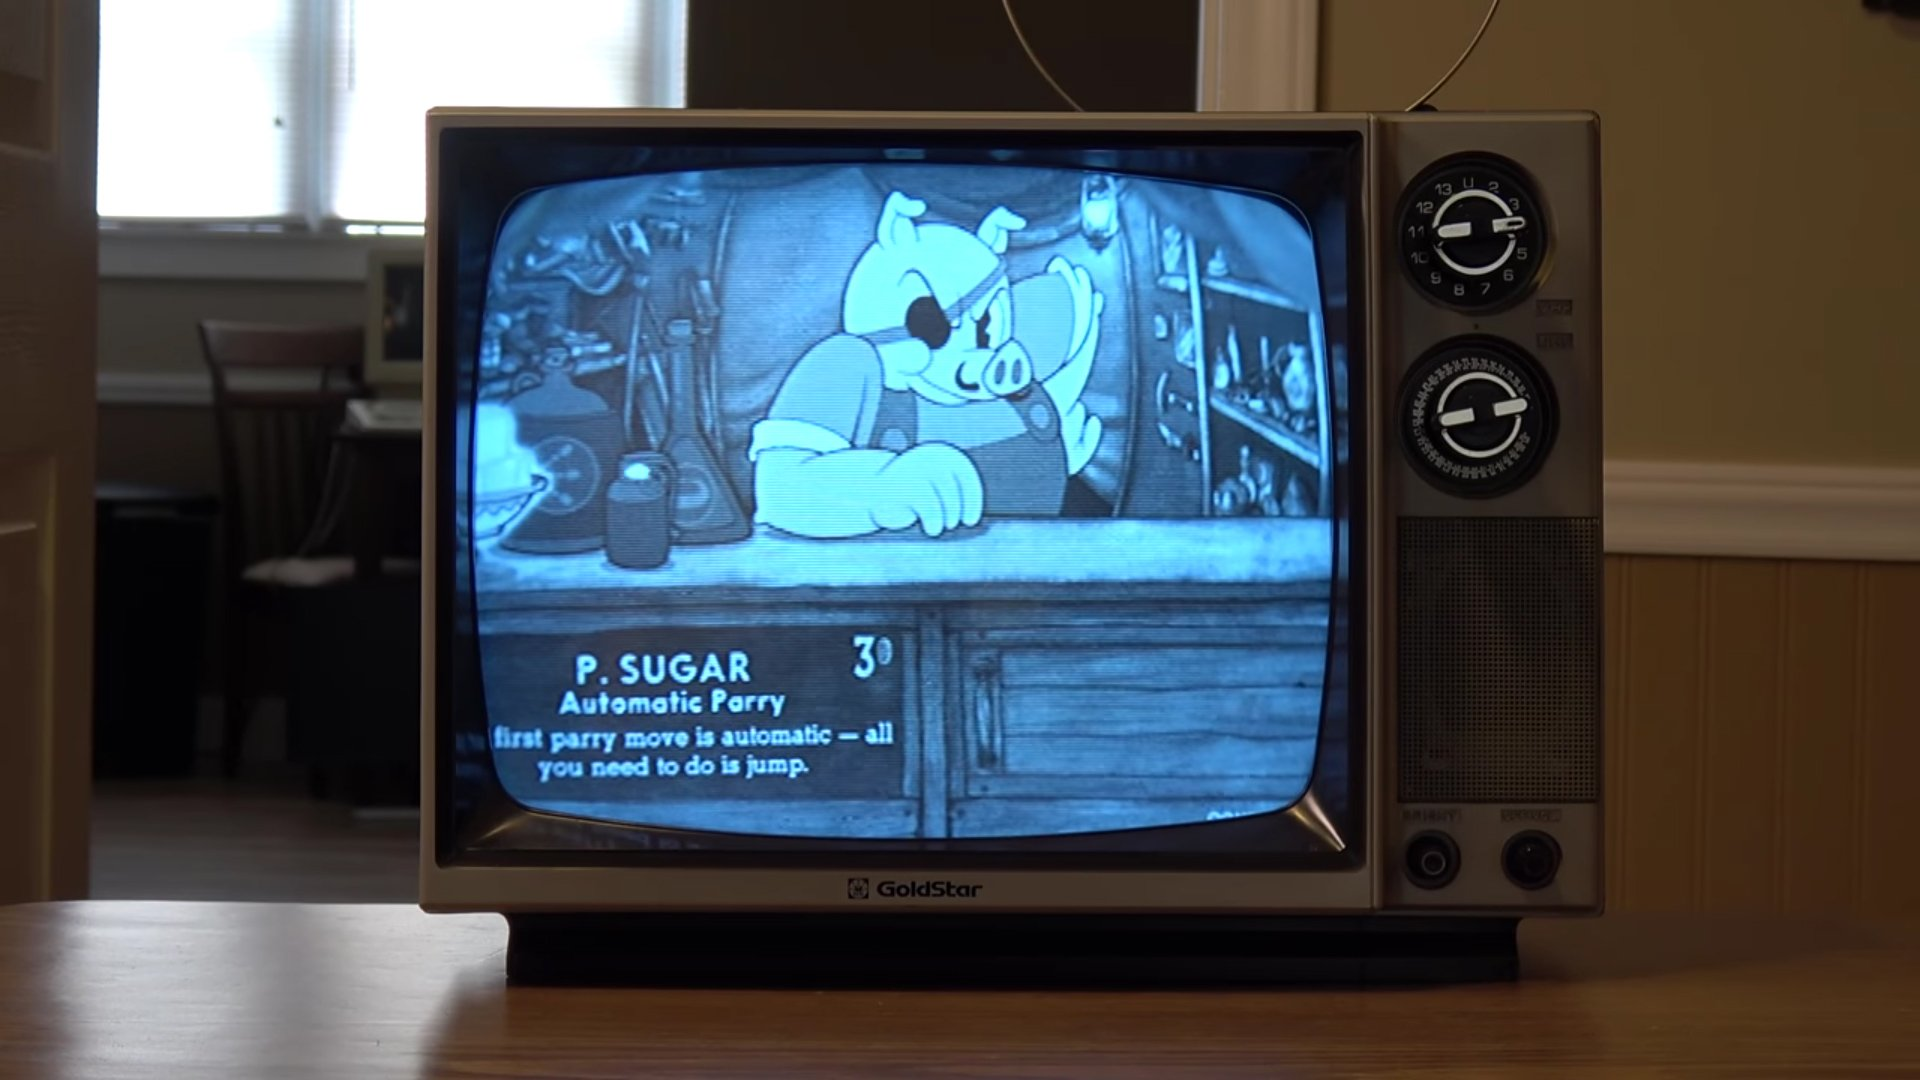 Cuphead looks right at home on this old television screenshot